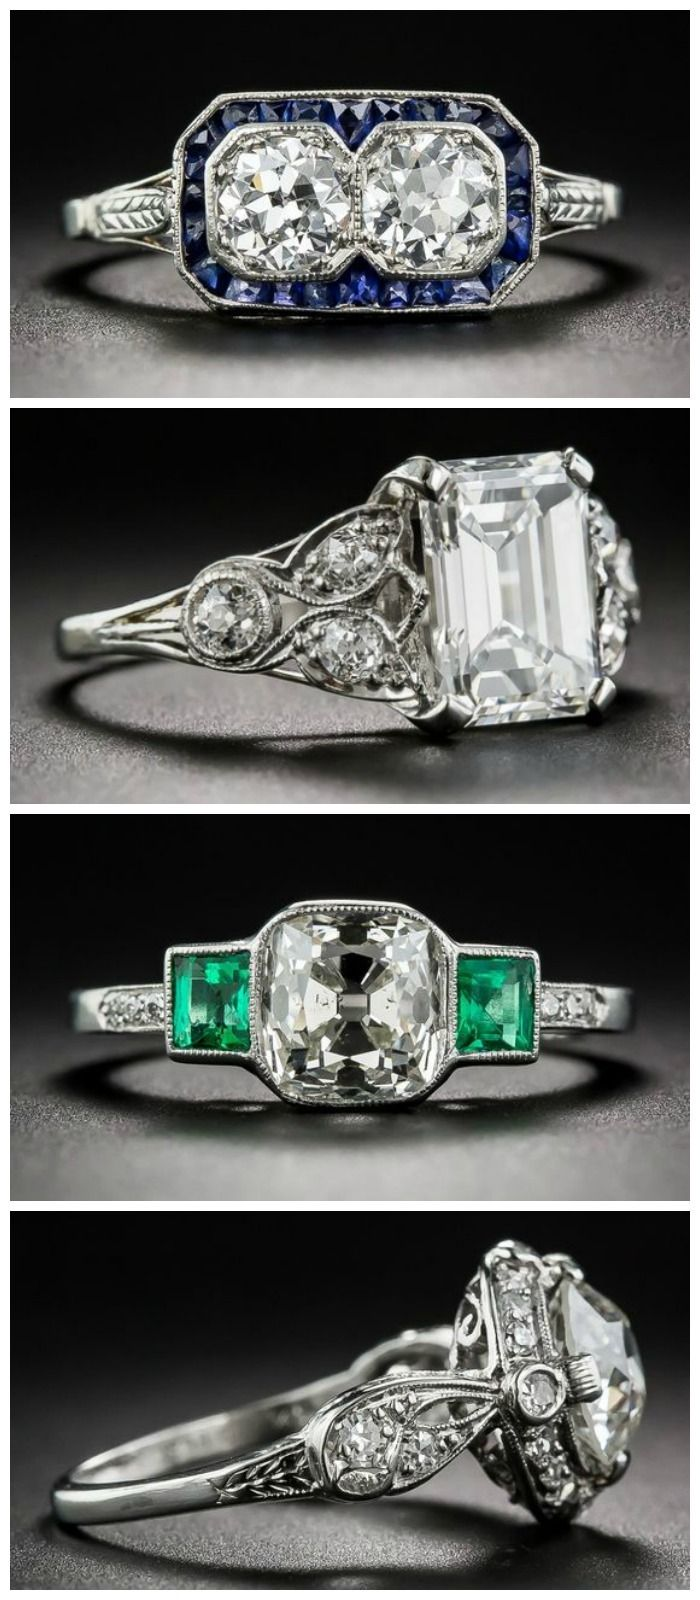 434 best images about Diamond rings vintage & antique on Pinterest